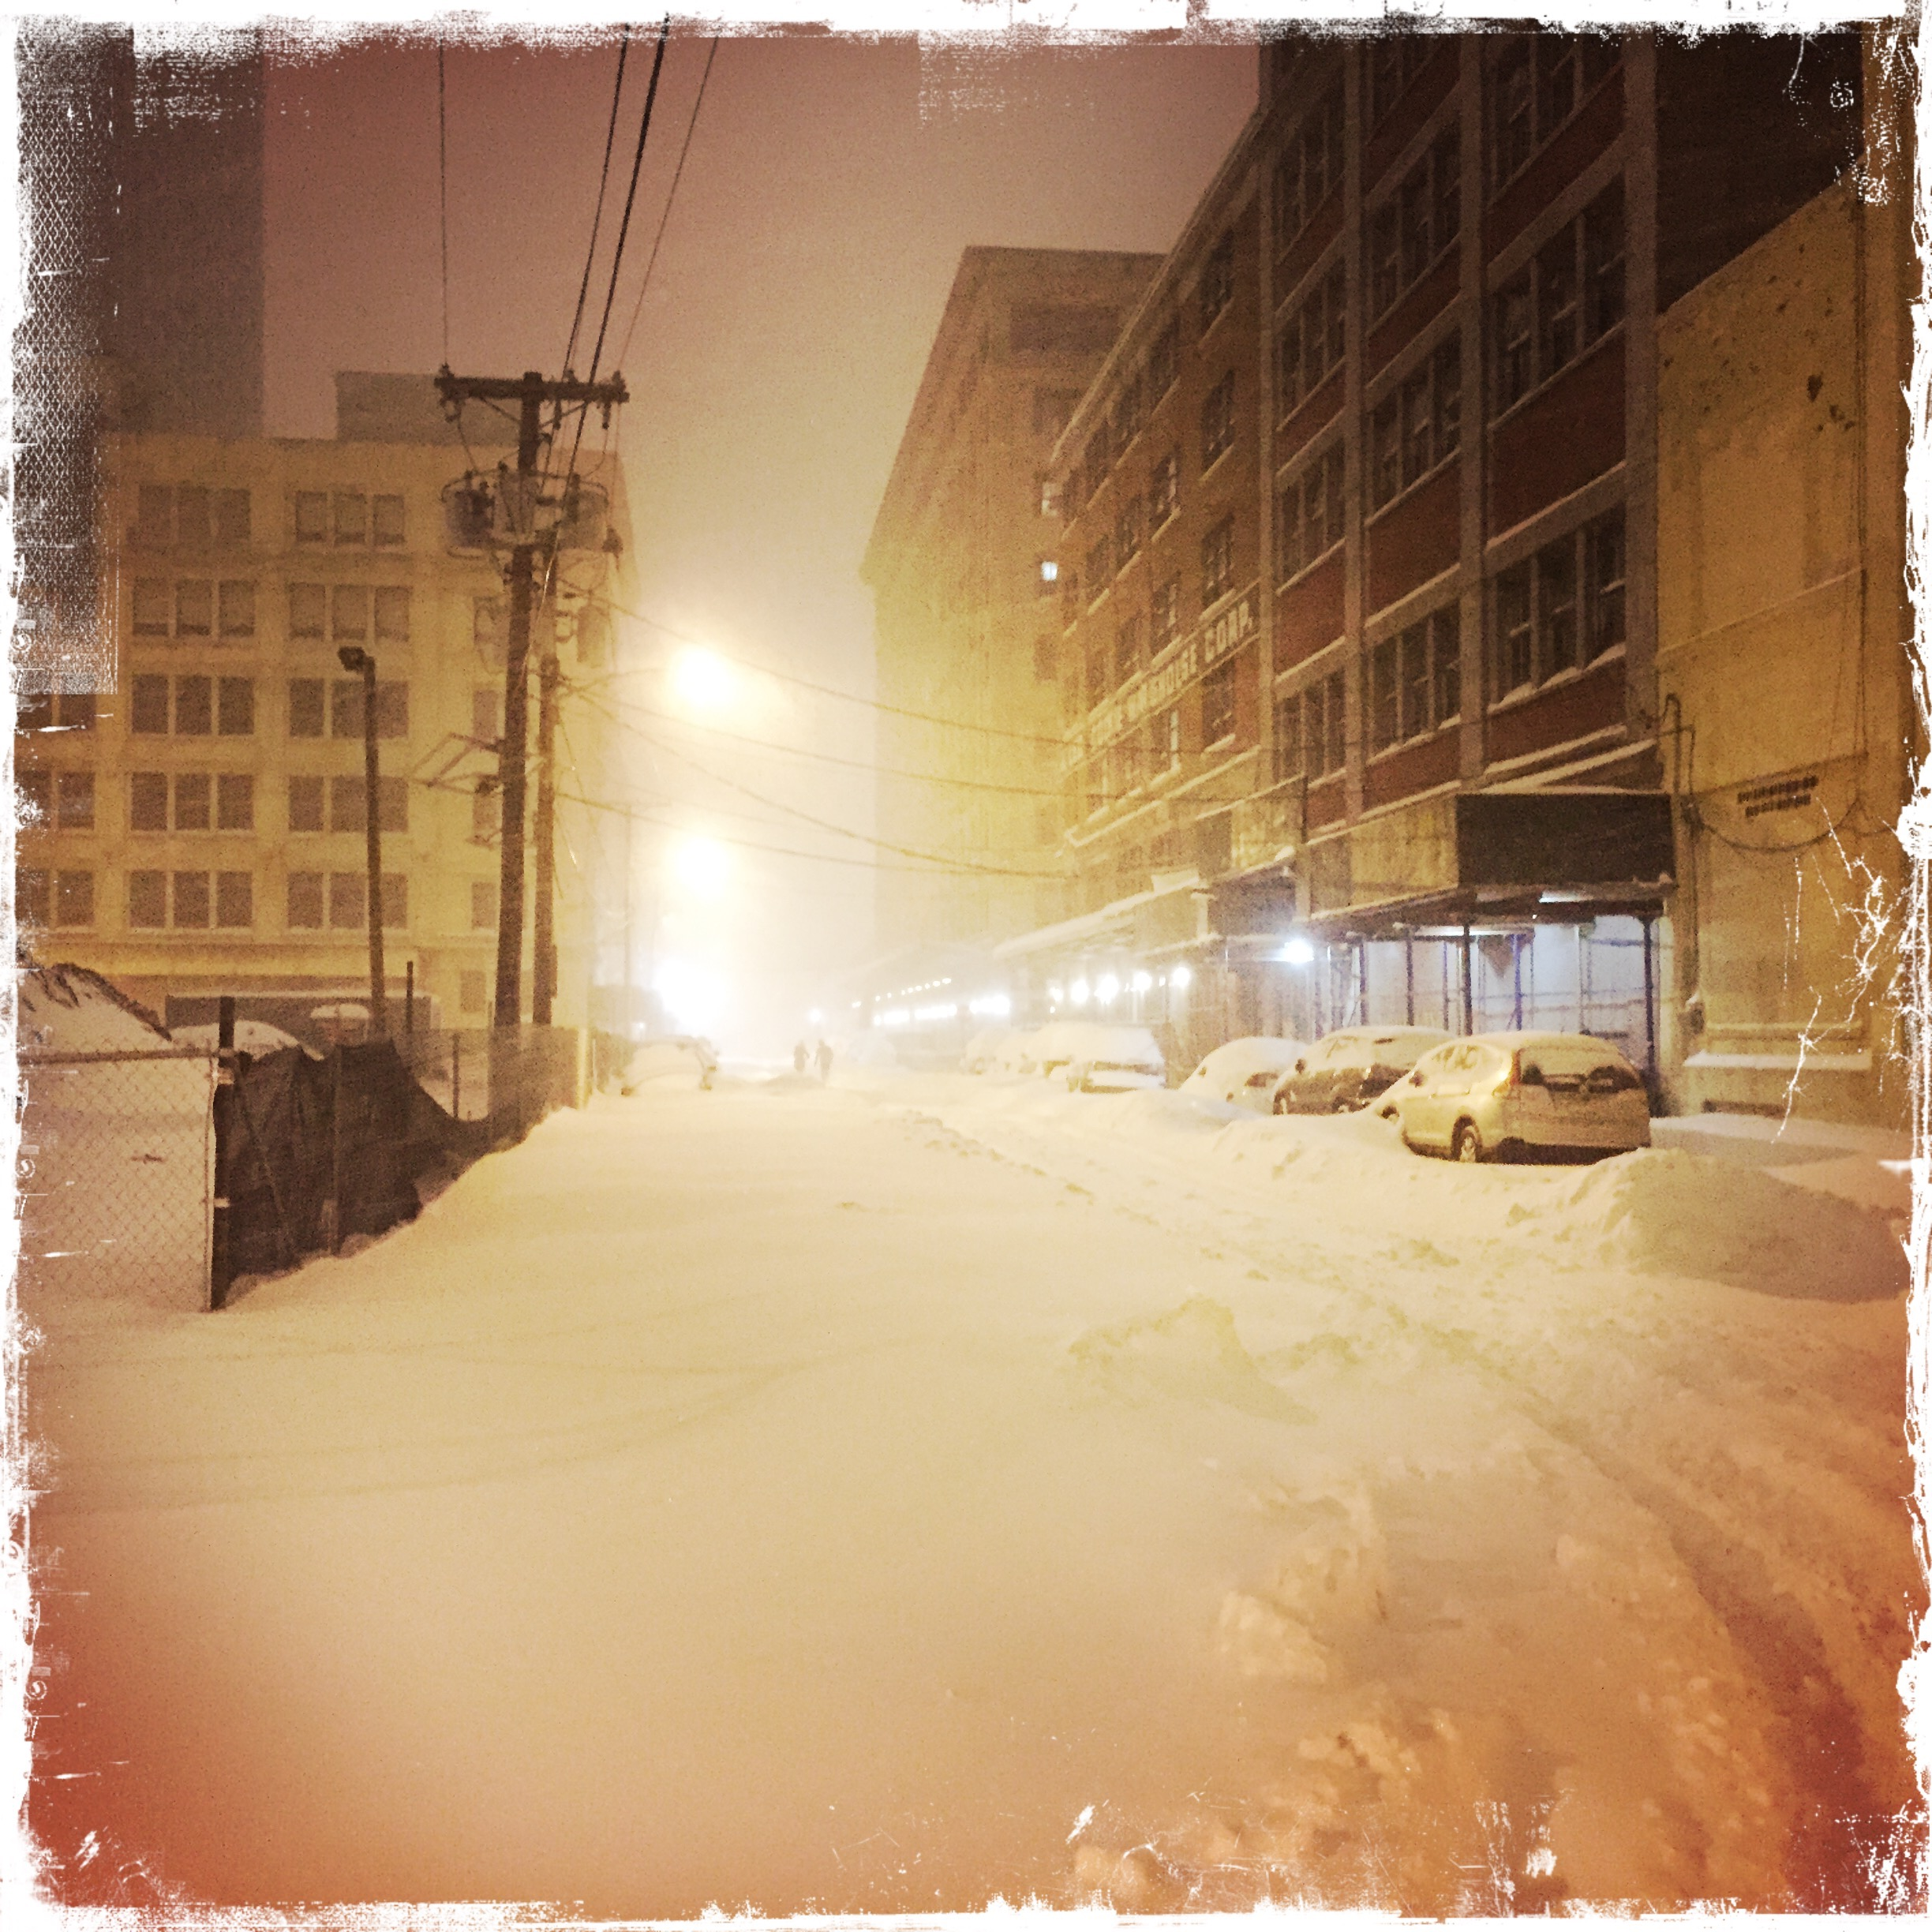 Barbara Sinclair, An Optimistic Nature-Lover's View of Winter Storm Jonas